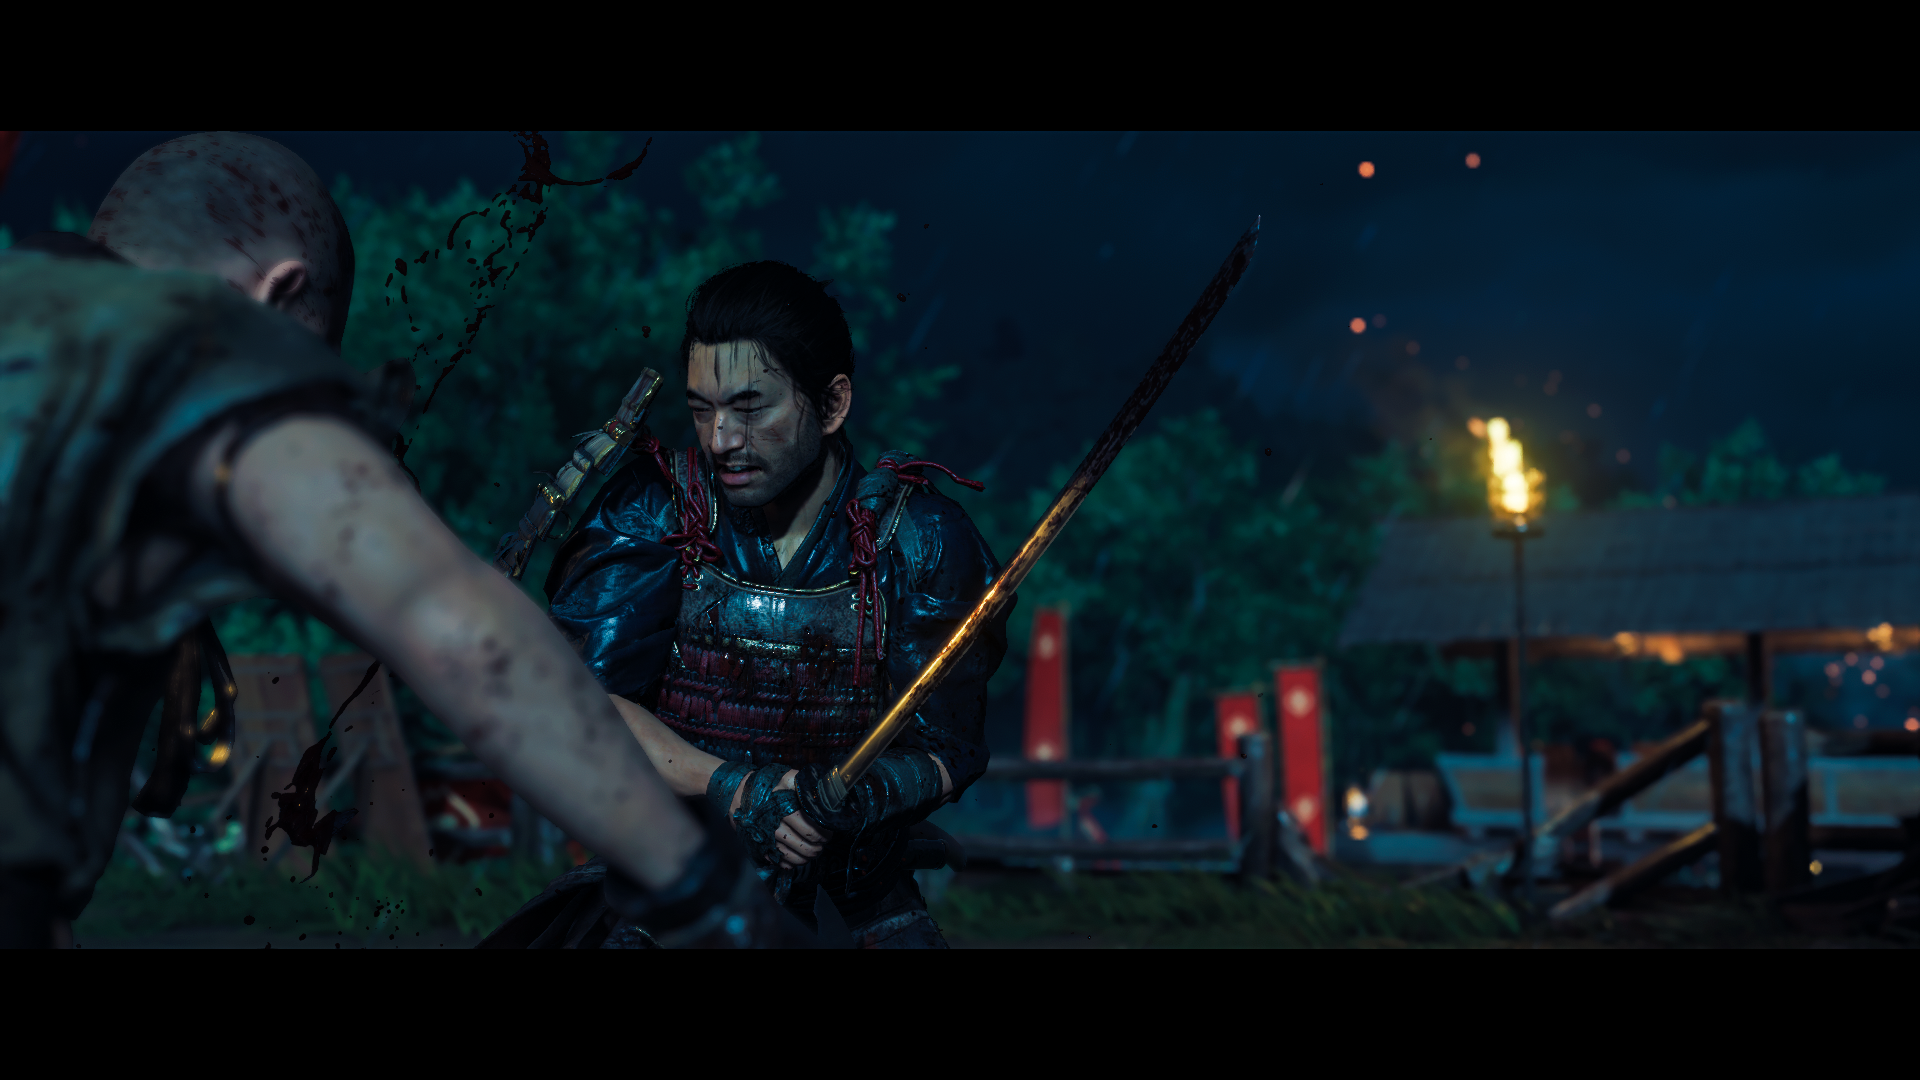 Ghost_of_Tsushima_20200719224302.png